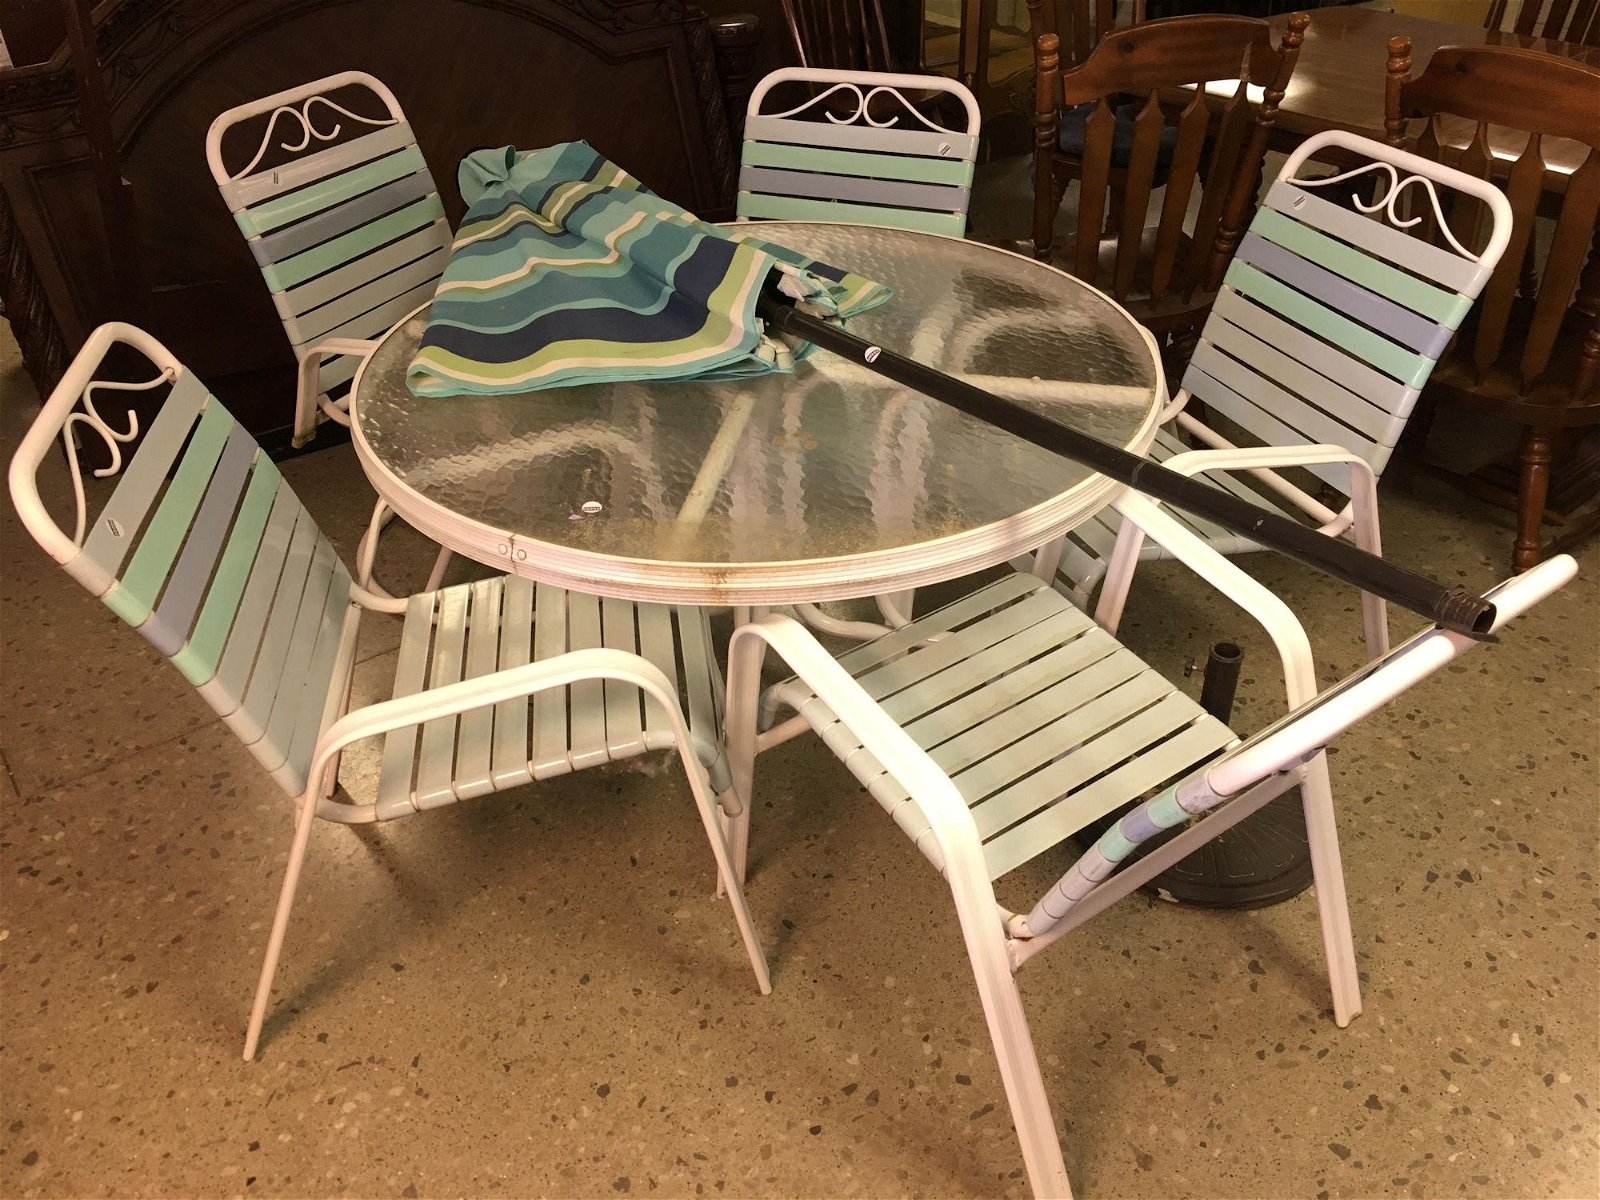 PATIO TABLE WITH 5 CHAIRS AND UMBRELLA